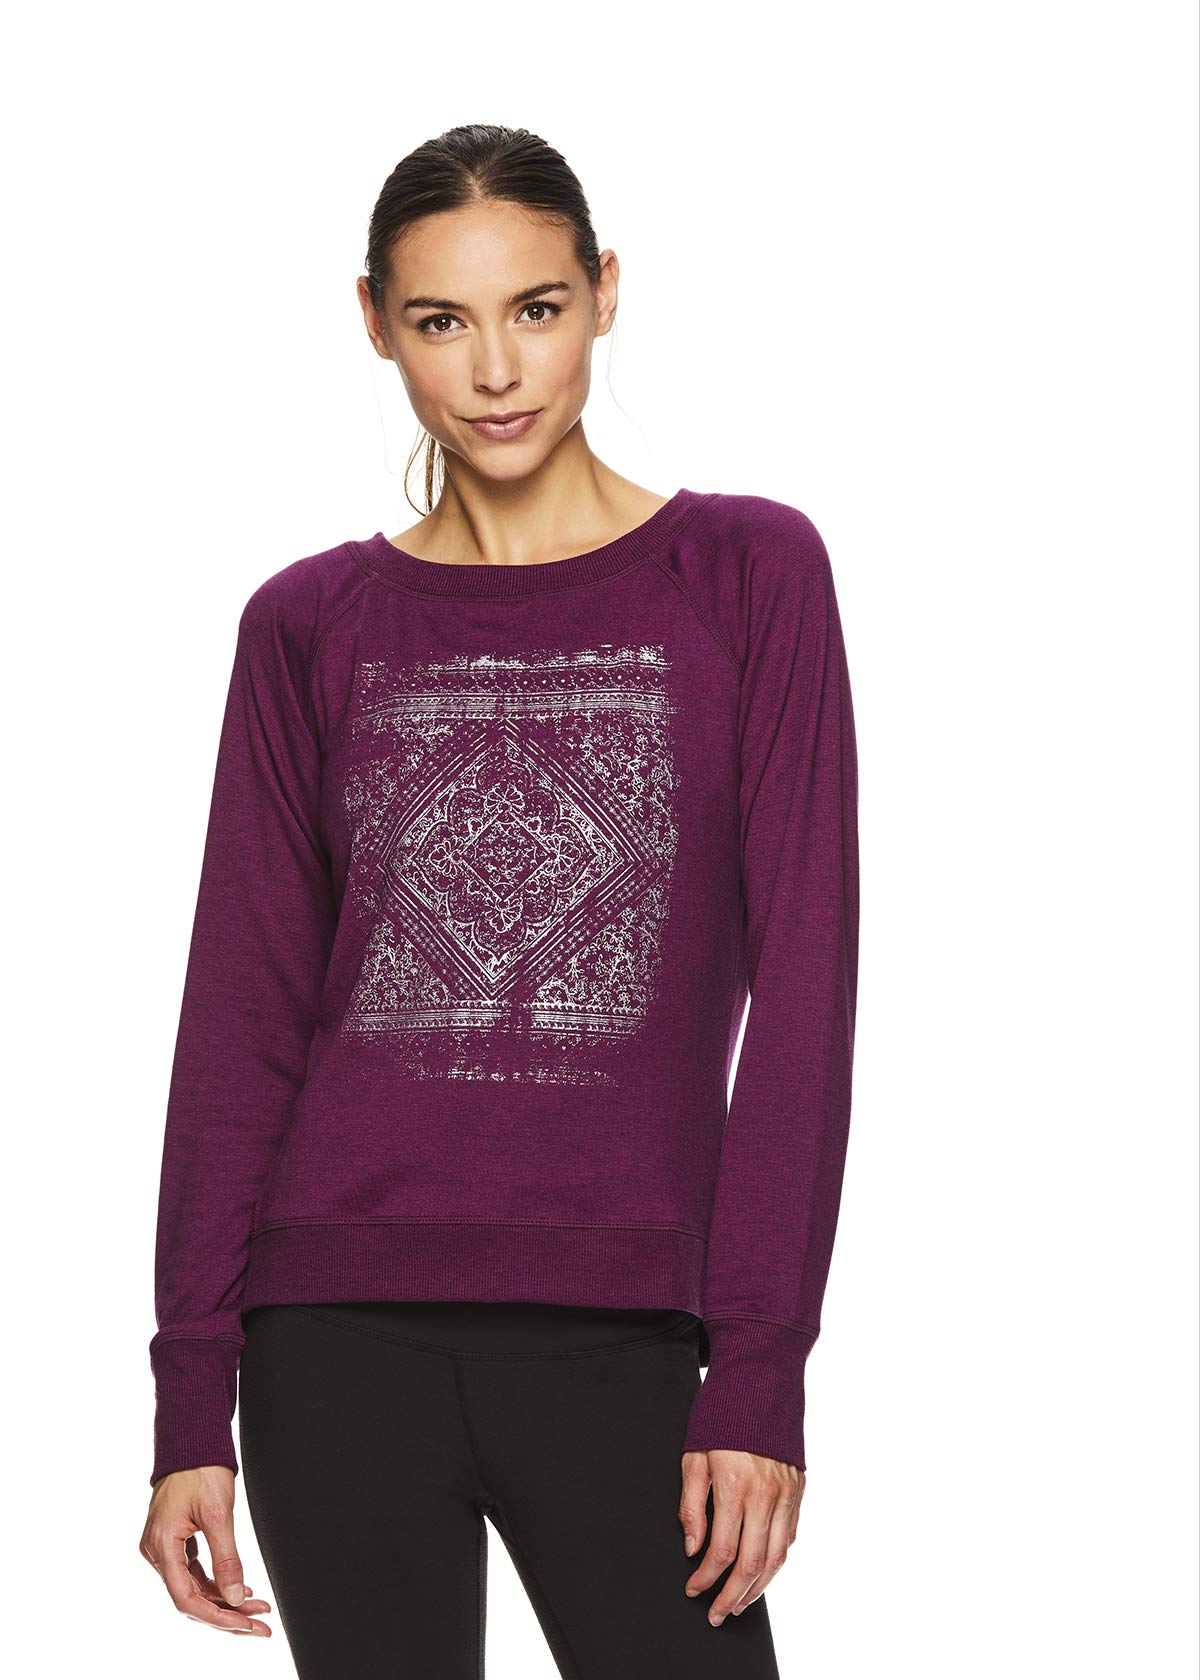 Gaiam Women's Pullover Yoga Sweater - Long Sleeve Graphic Activewear Shirt - Calla Pickled Beet Heather, X-Large by Gaiam